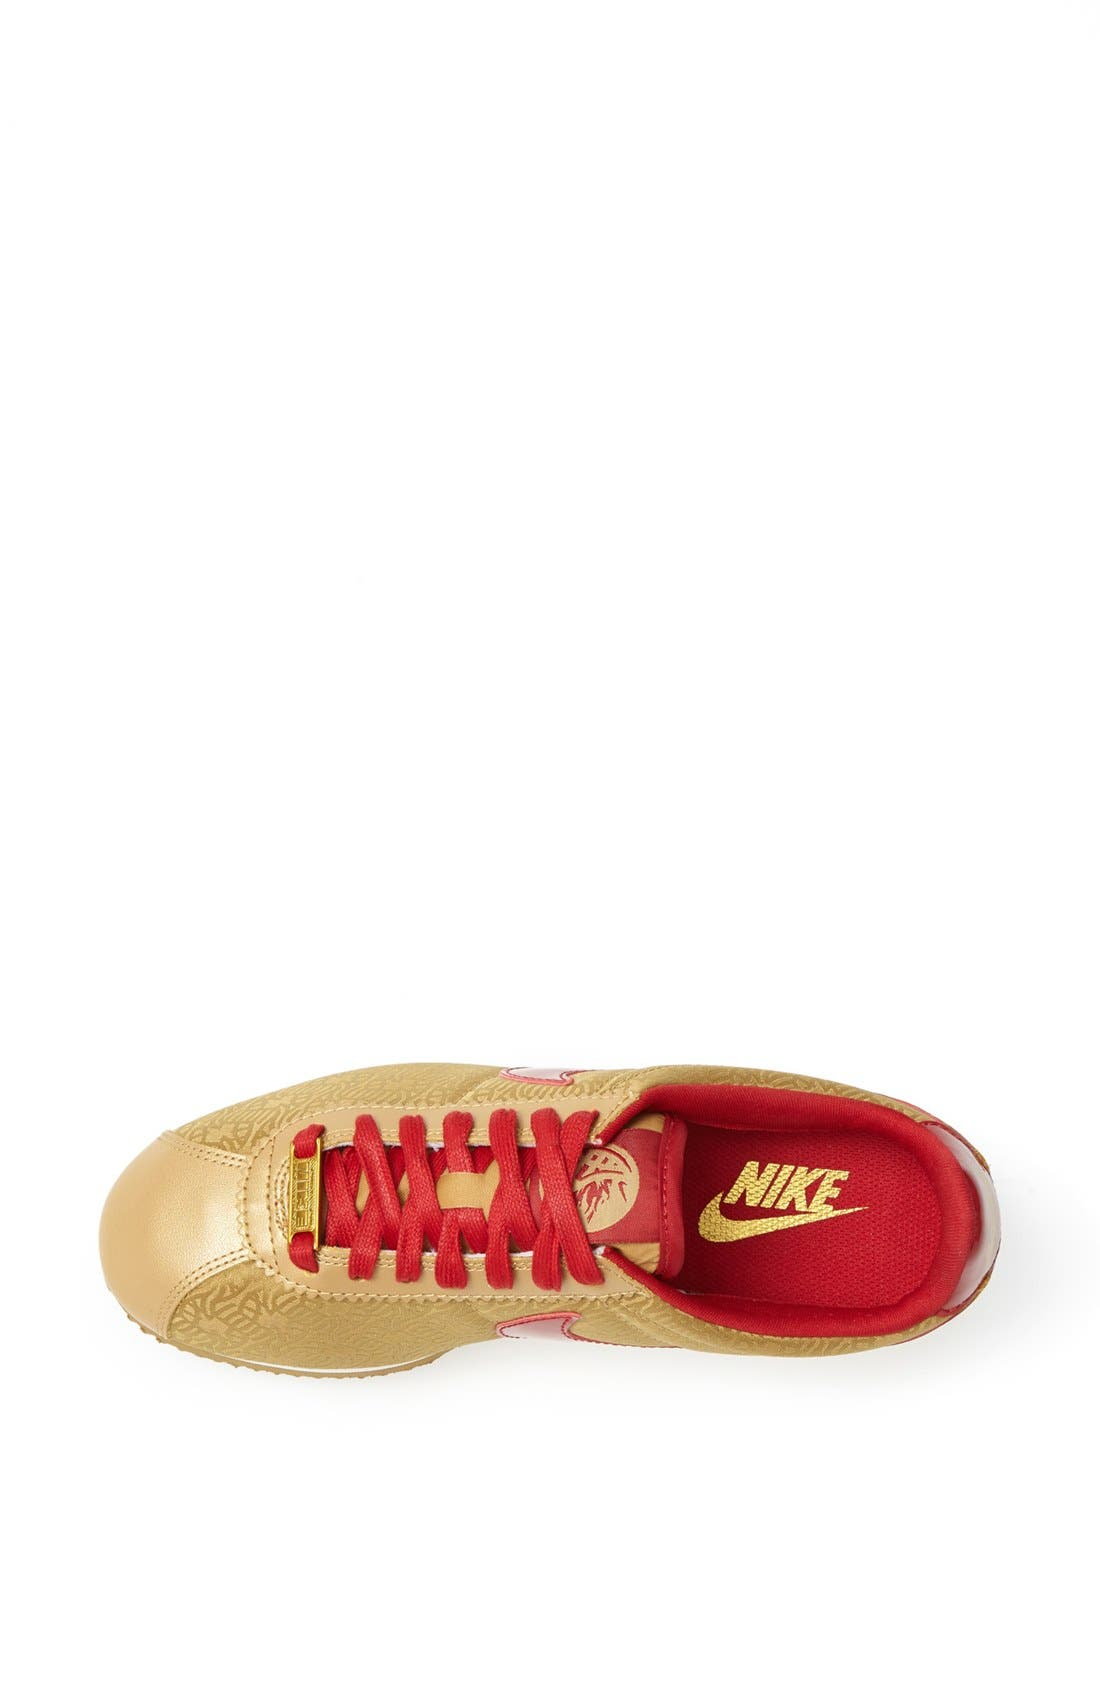 Alternate Image 3  - Nike 'Classic Cortez - Year of the Horse' Sneaker (Women)